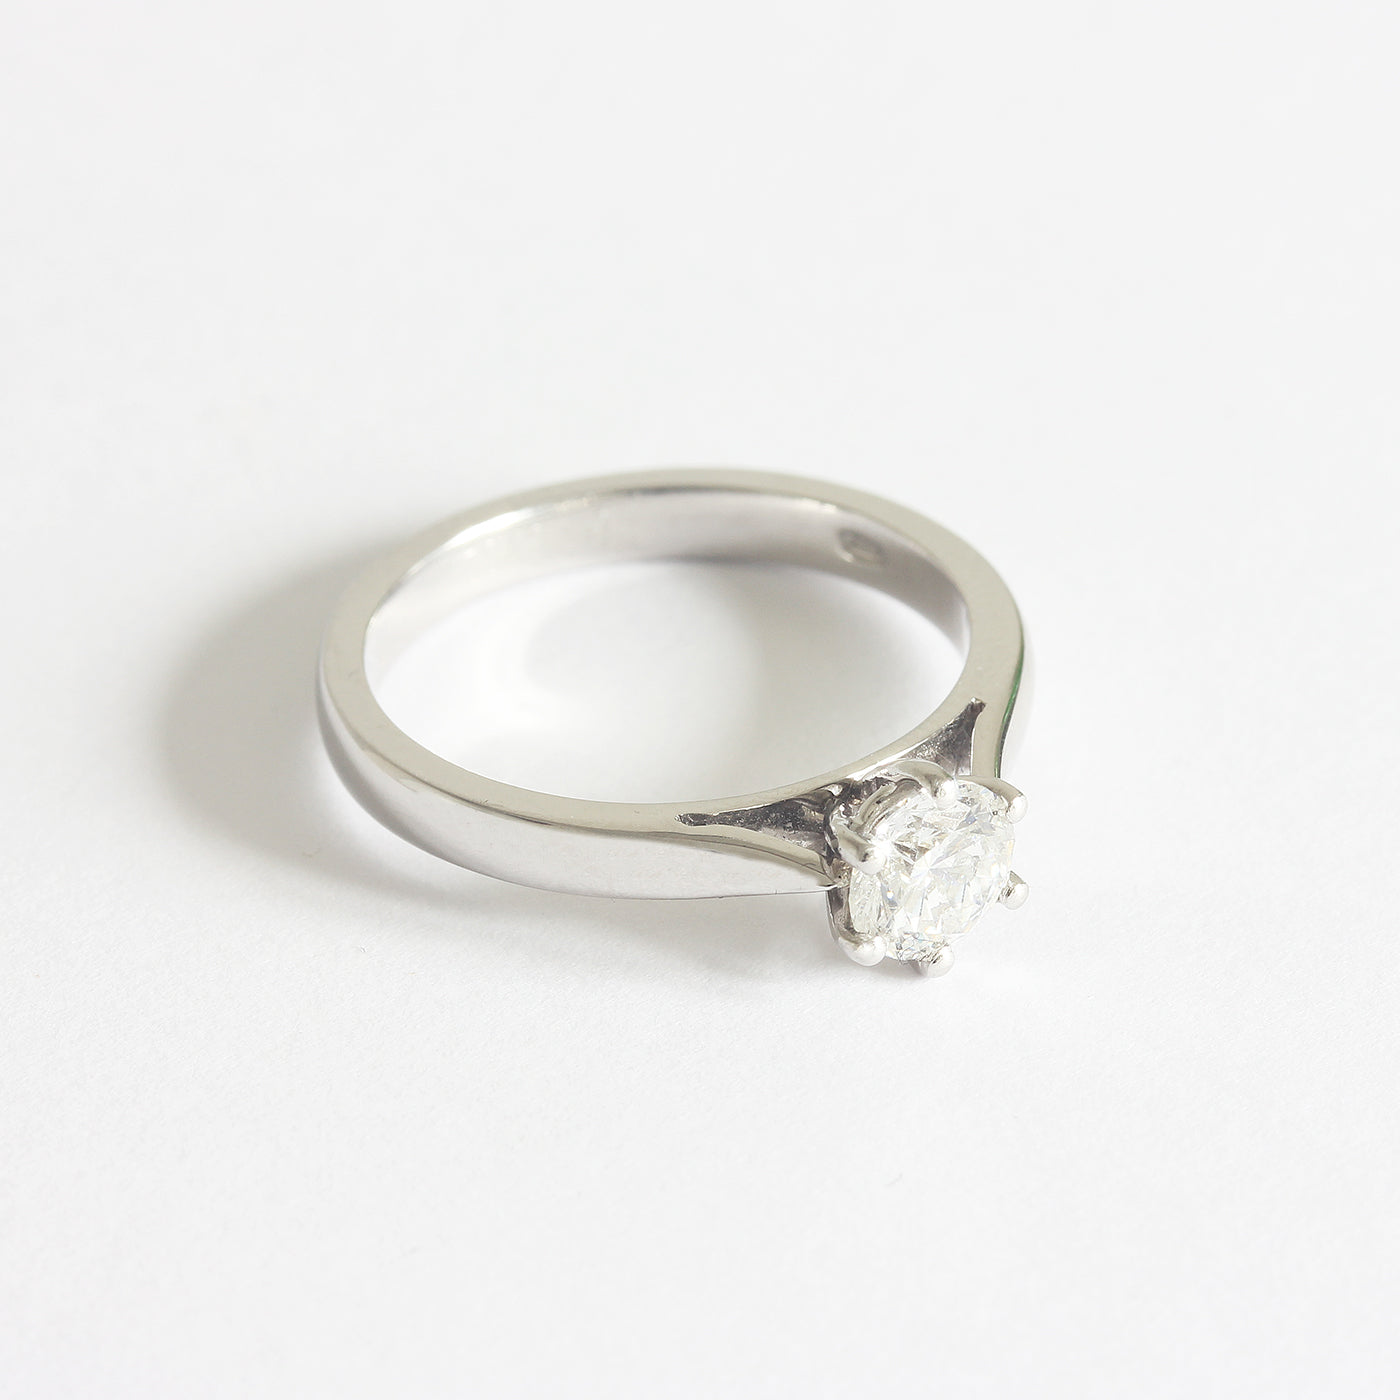 a stunning diamond engagement ring solitaire with 6 claws in platinum